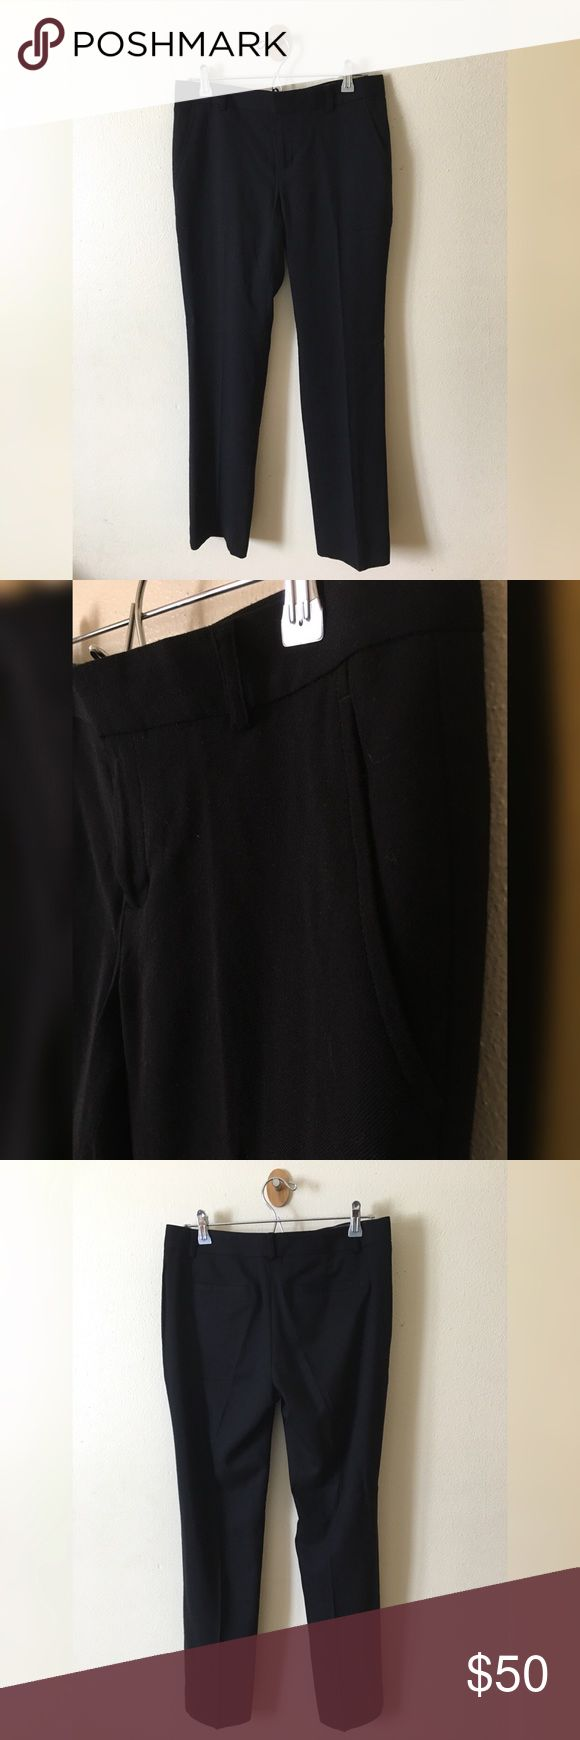 """*NWT* BANANA REPUBLIC trousers BANANA REPUBLIC black trousers; 30"""" inseam; two front pockets; 2 back pockets Banana Republic Pants Trousers"""